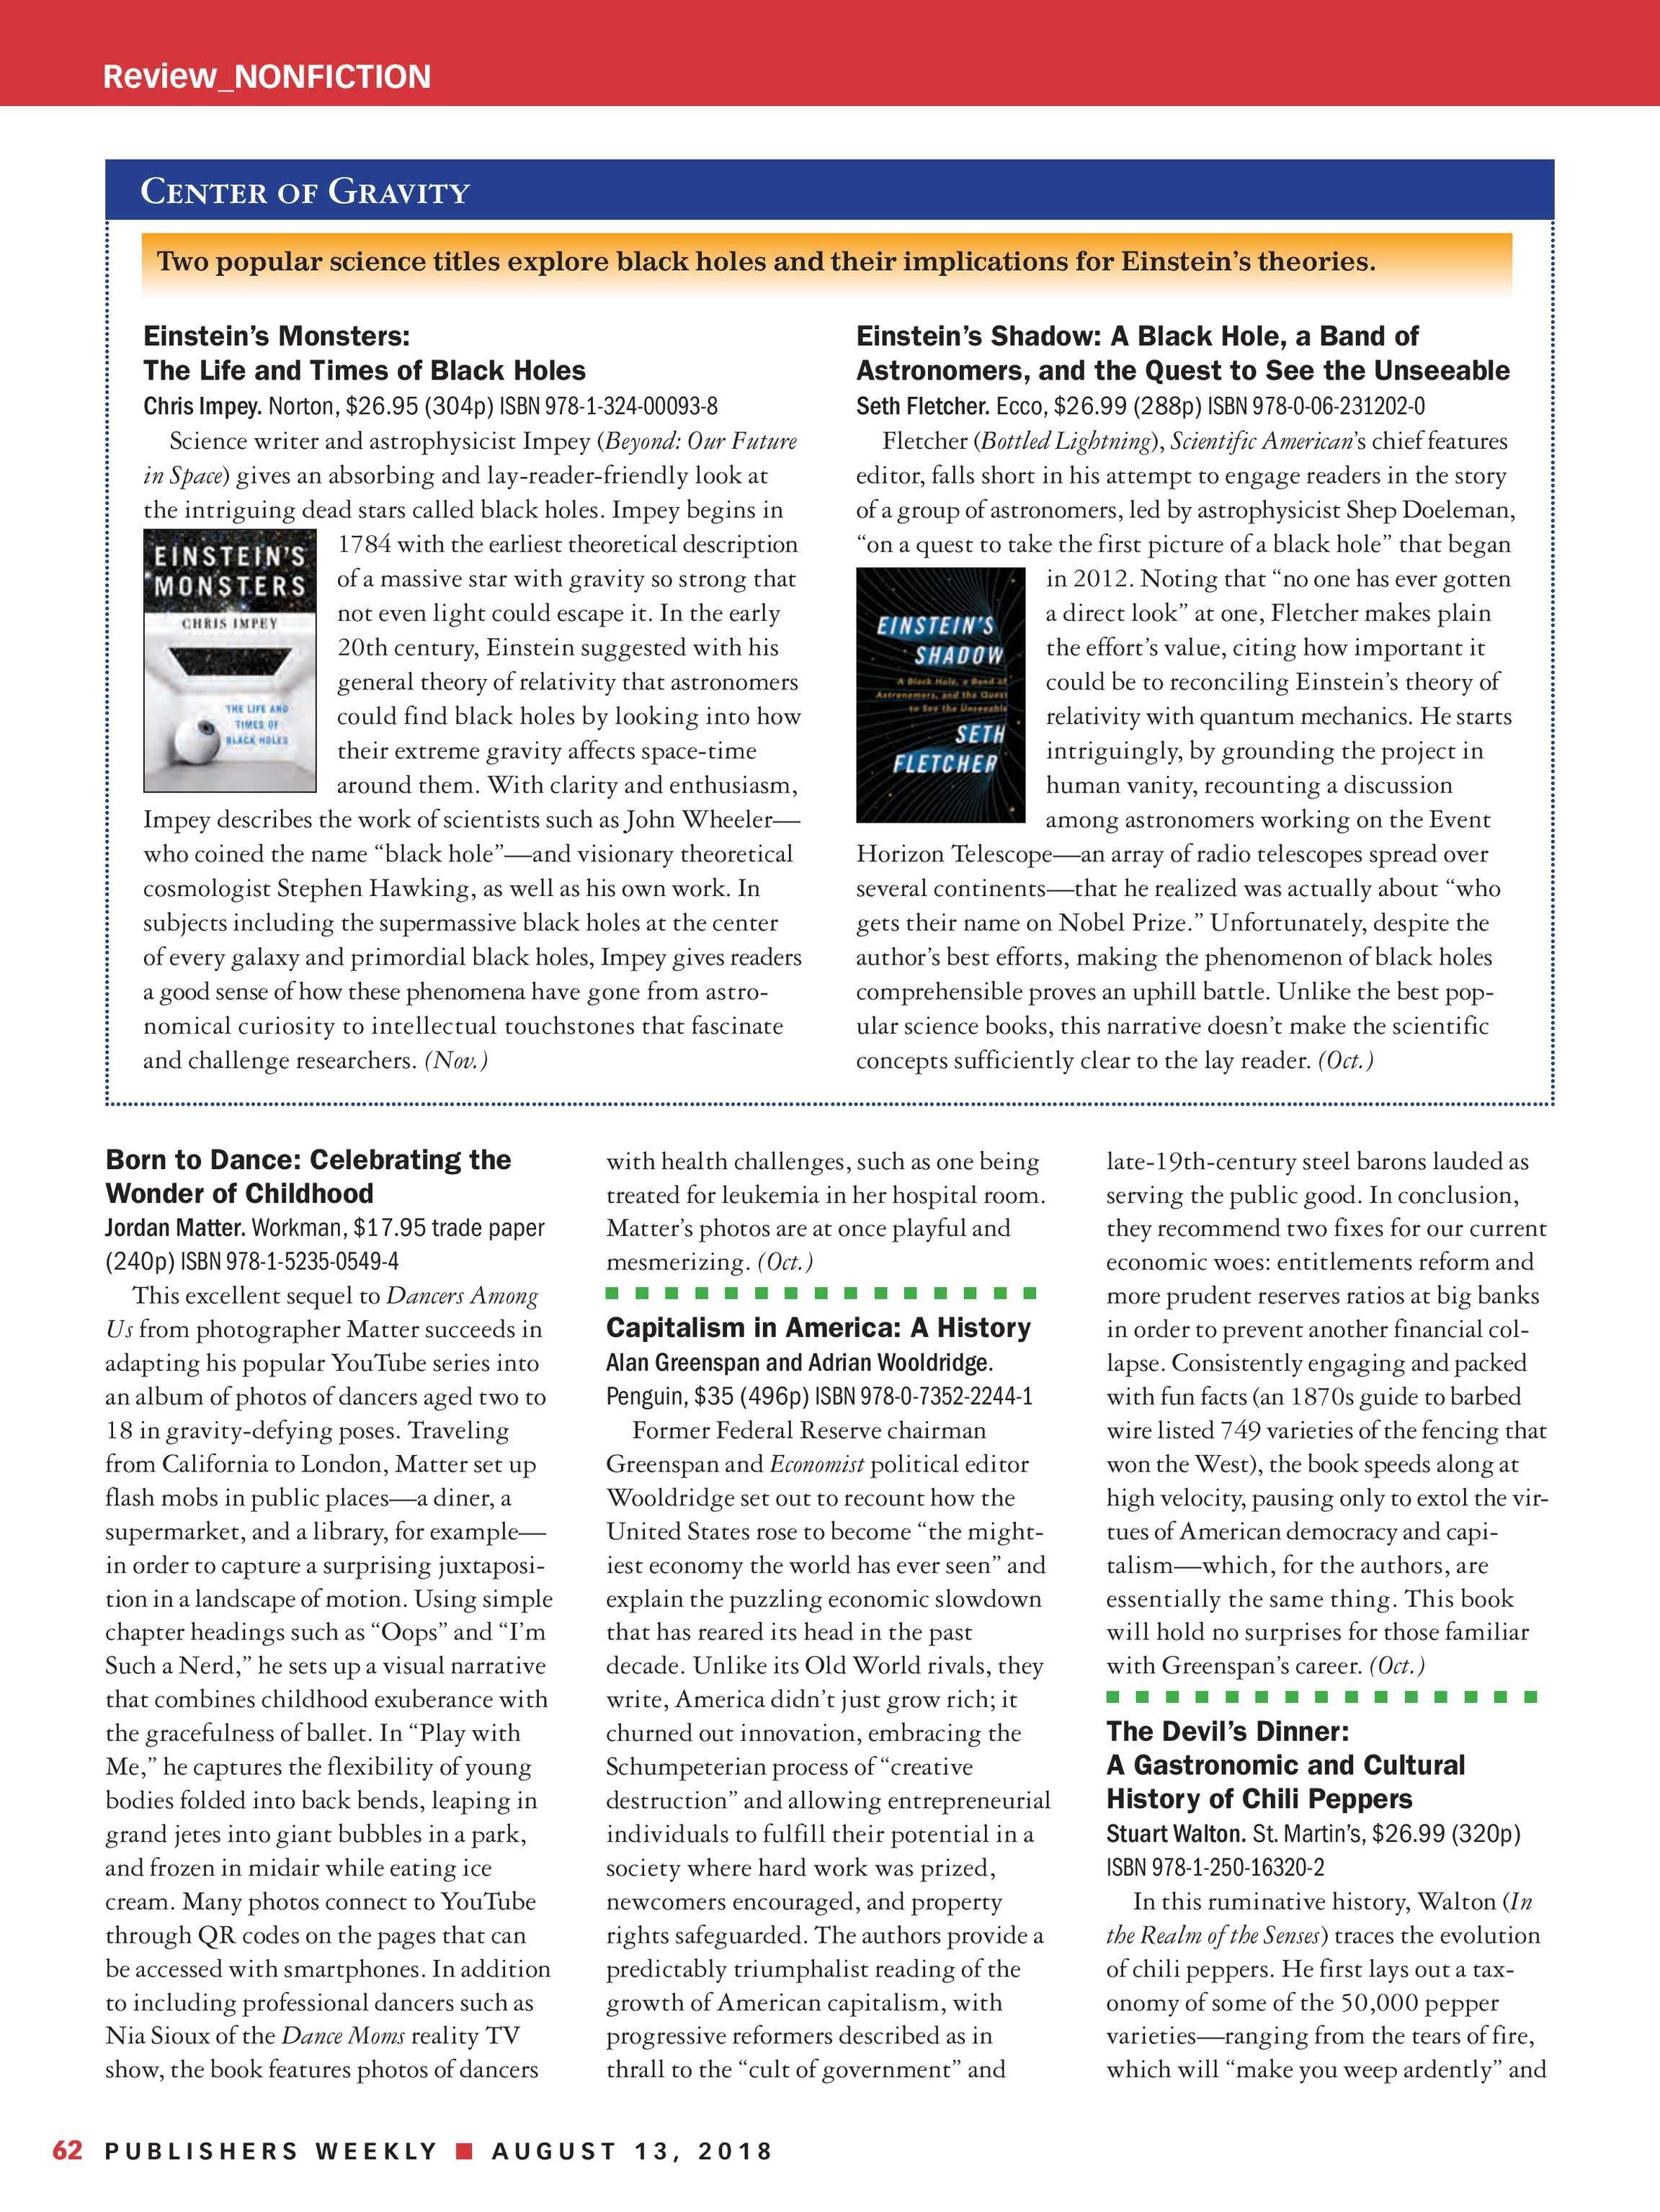 Publishers Weekly - August 13, 2018 - page 56